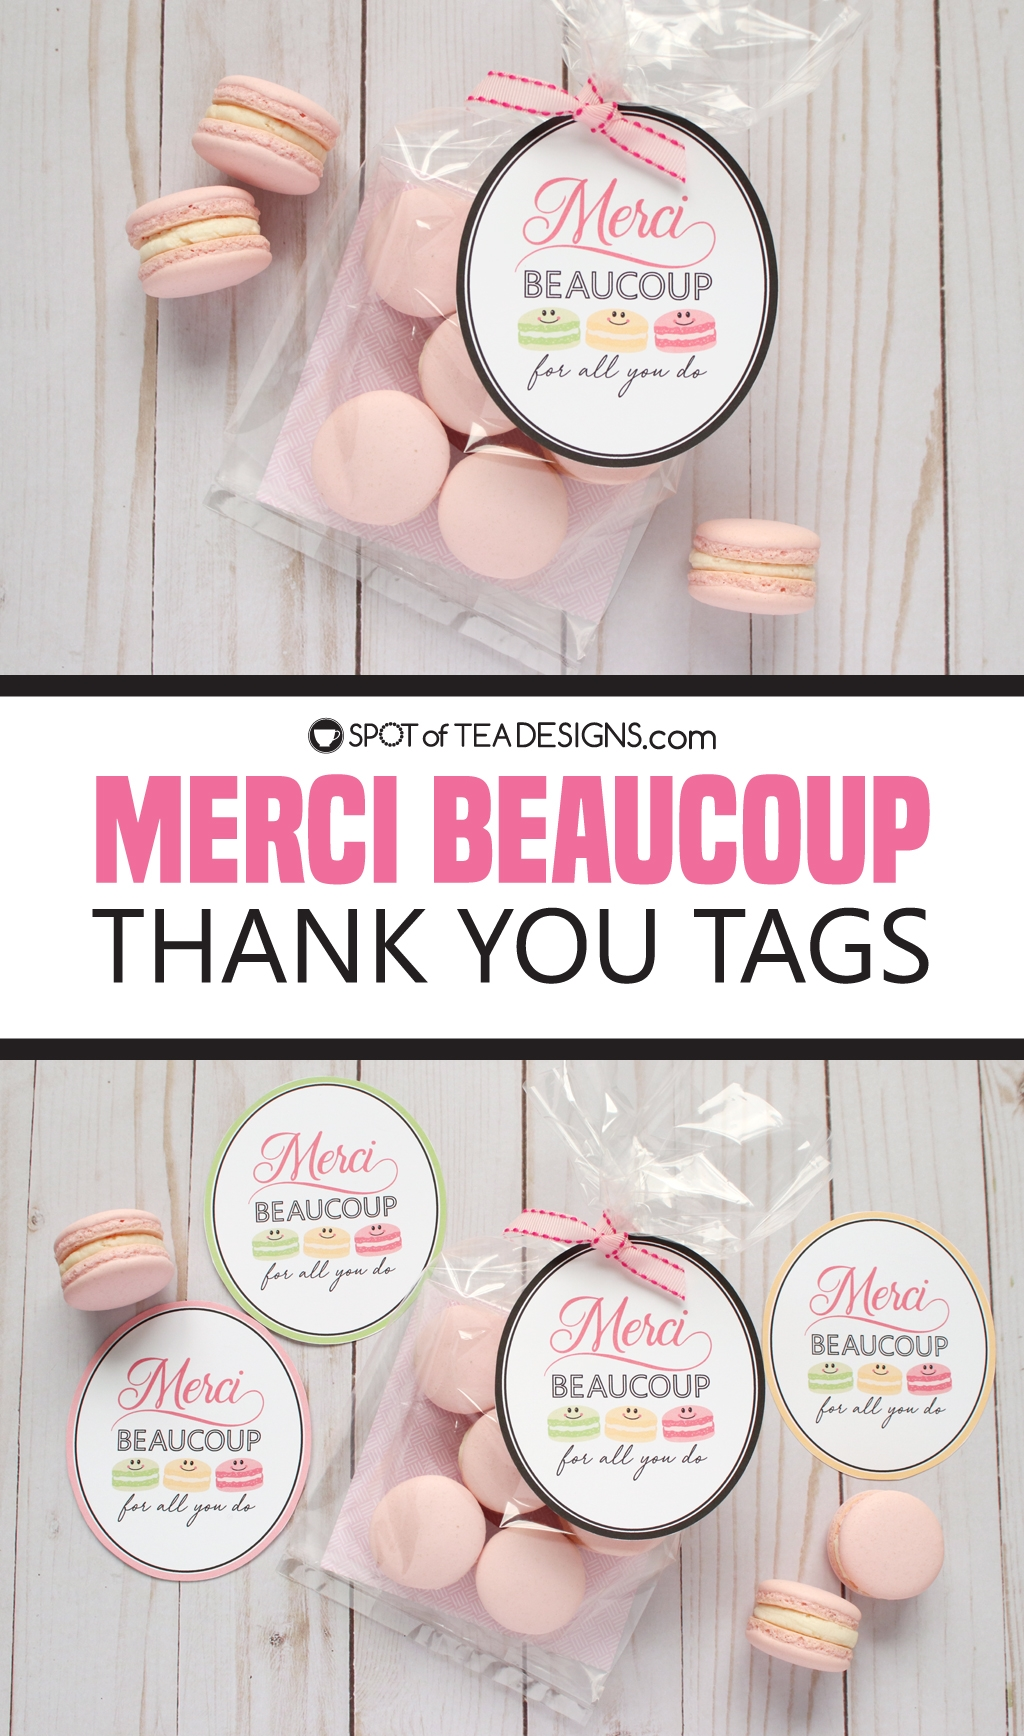 Merci beaucoup thank you tags - great for teacher appreciation | spotofteadesigns.com